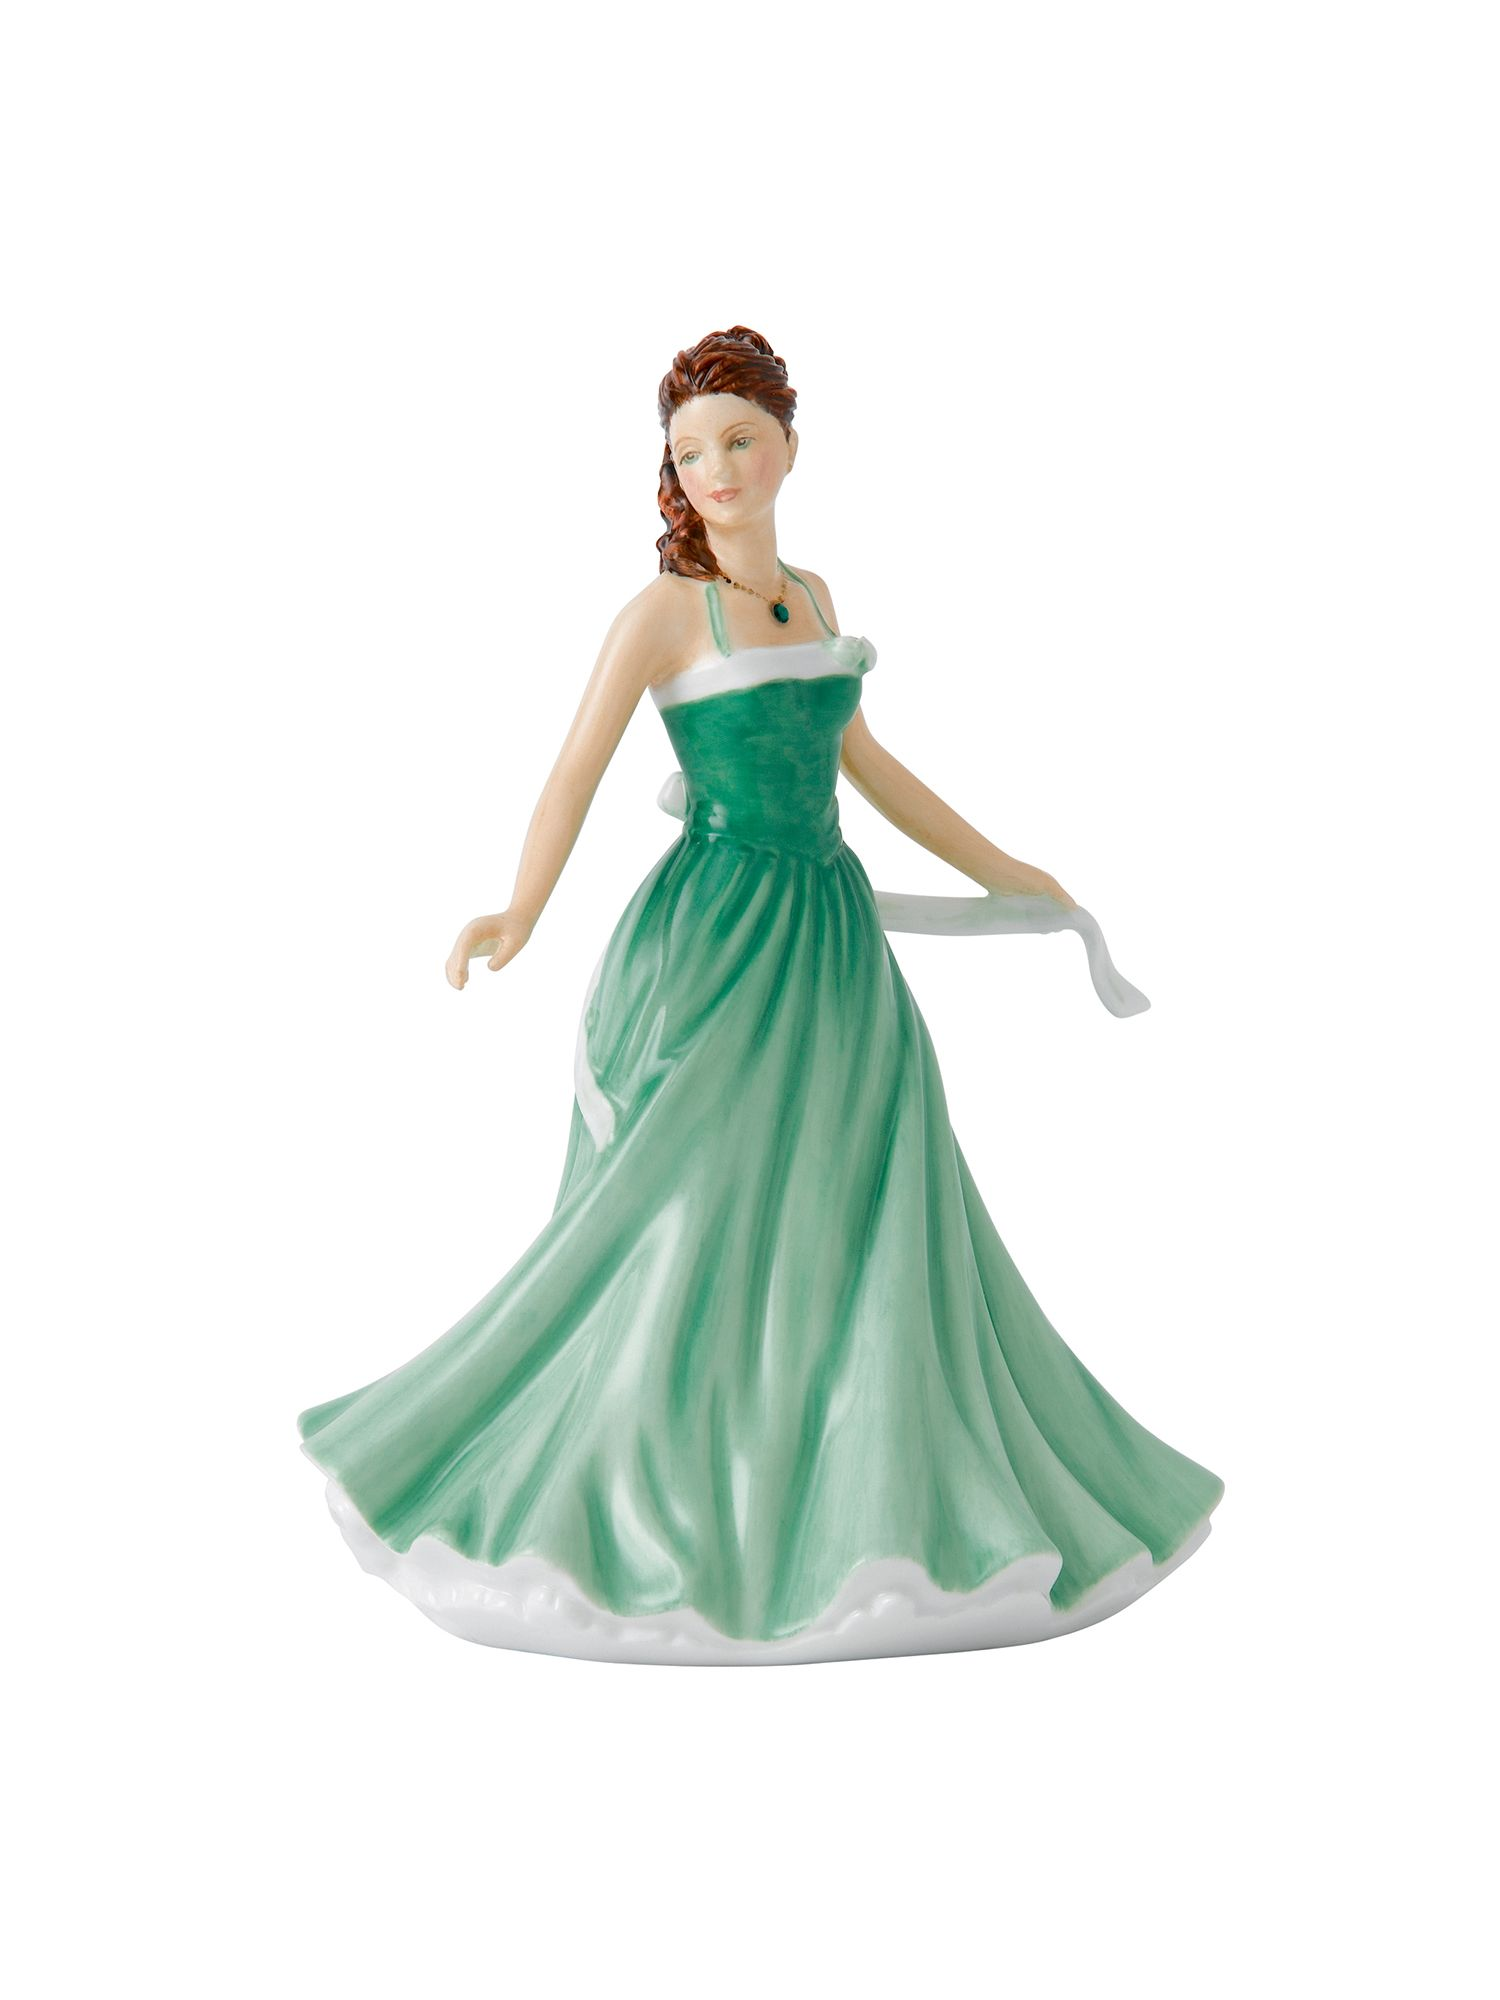 Birthstone petites may - emerald